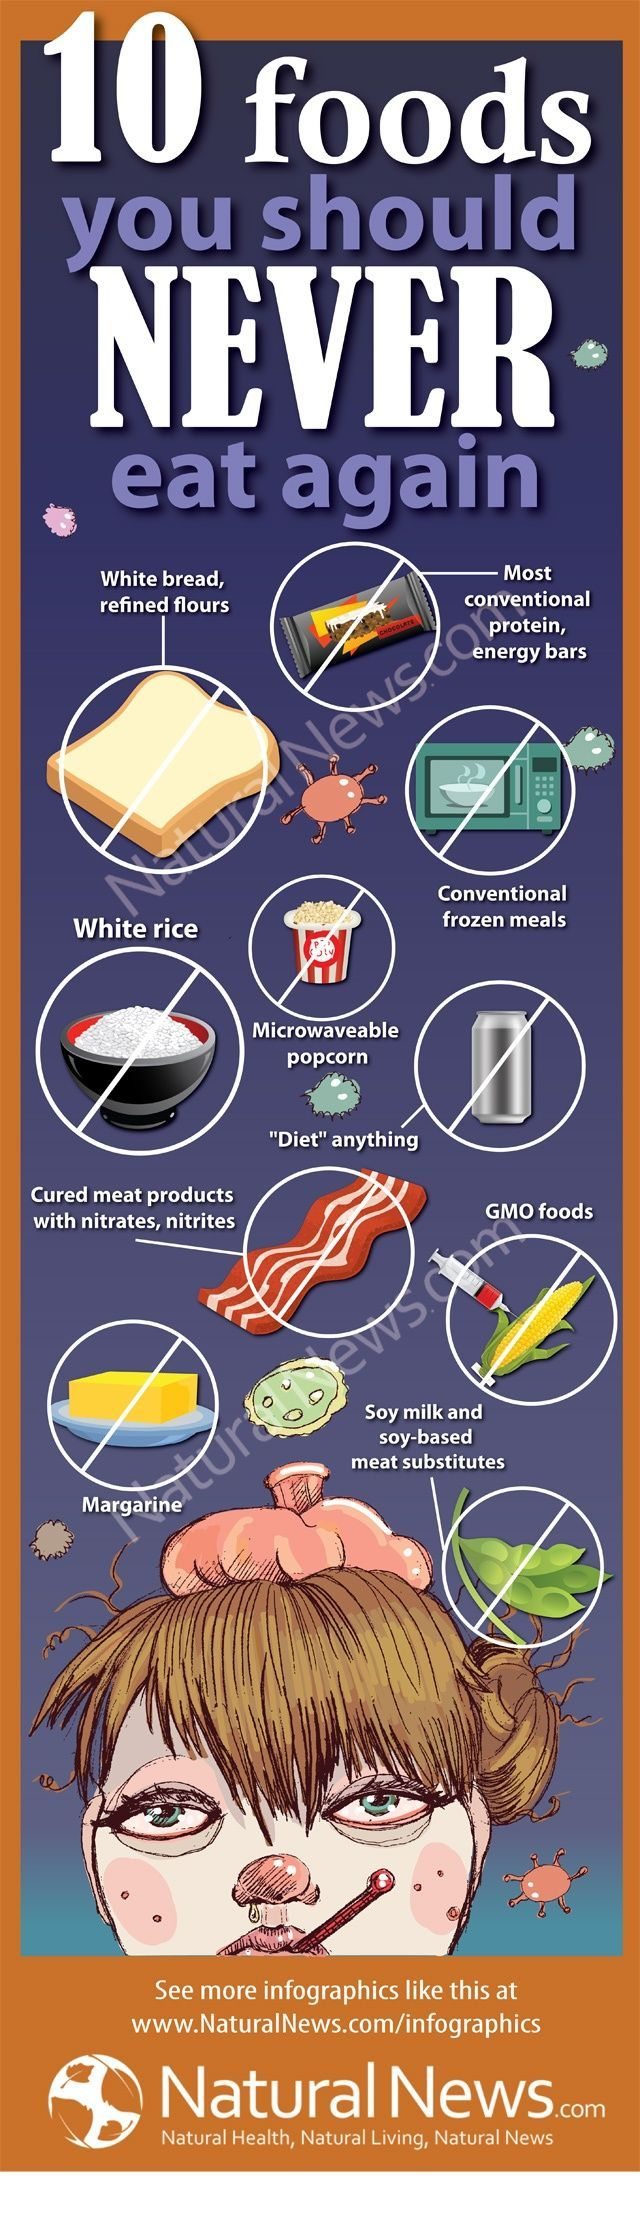 just say no to gmo! Ive stayed clear of these foods for ages and i feel so much better, but sometimes i may have the occasional rice dish, which isnt too bad i hope.